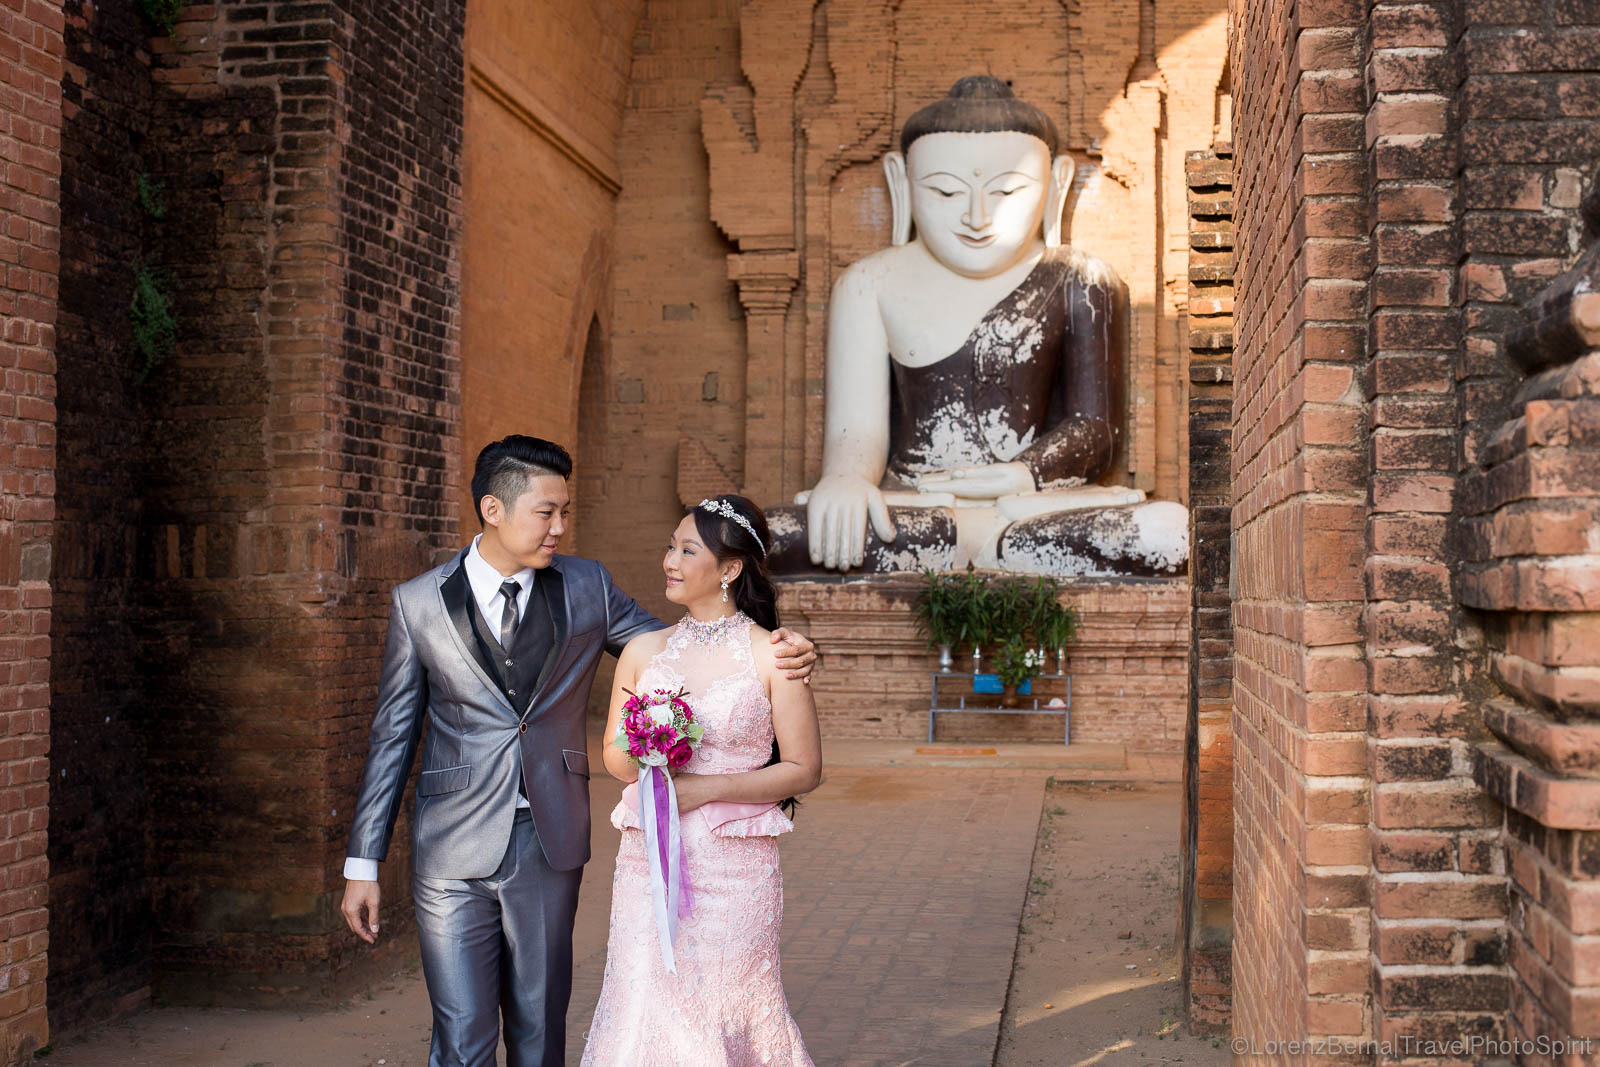 Couple just married, paying homage to the Buddha.